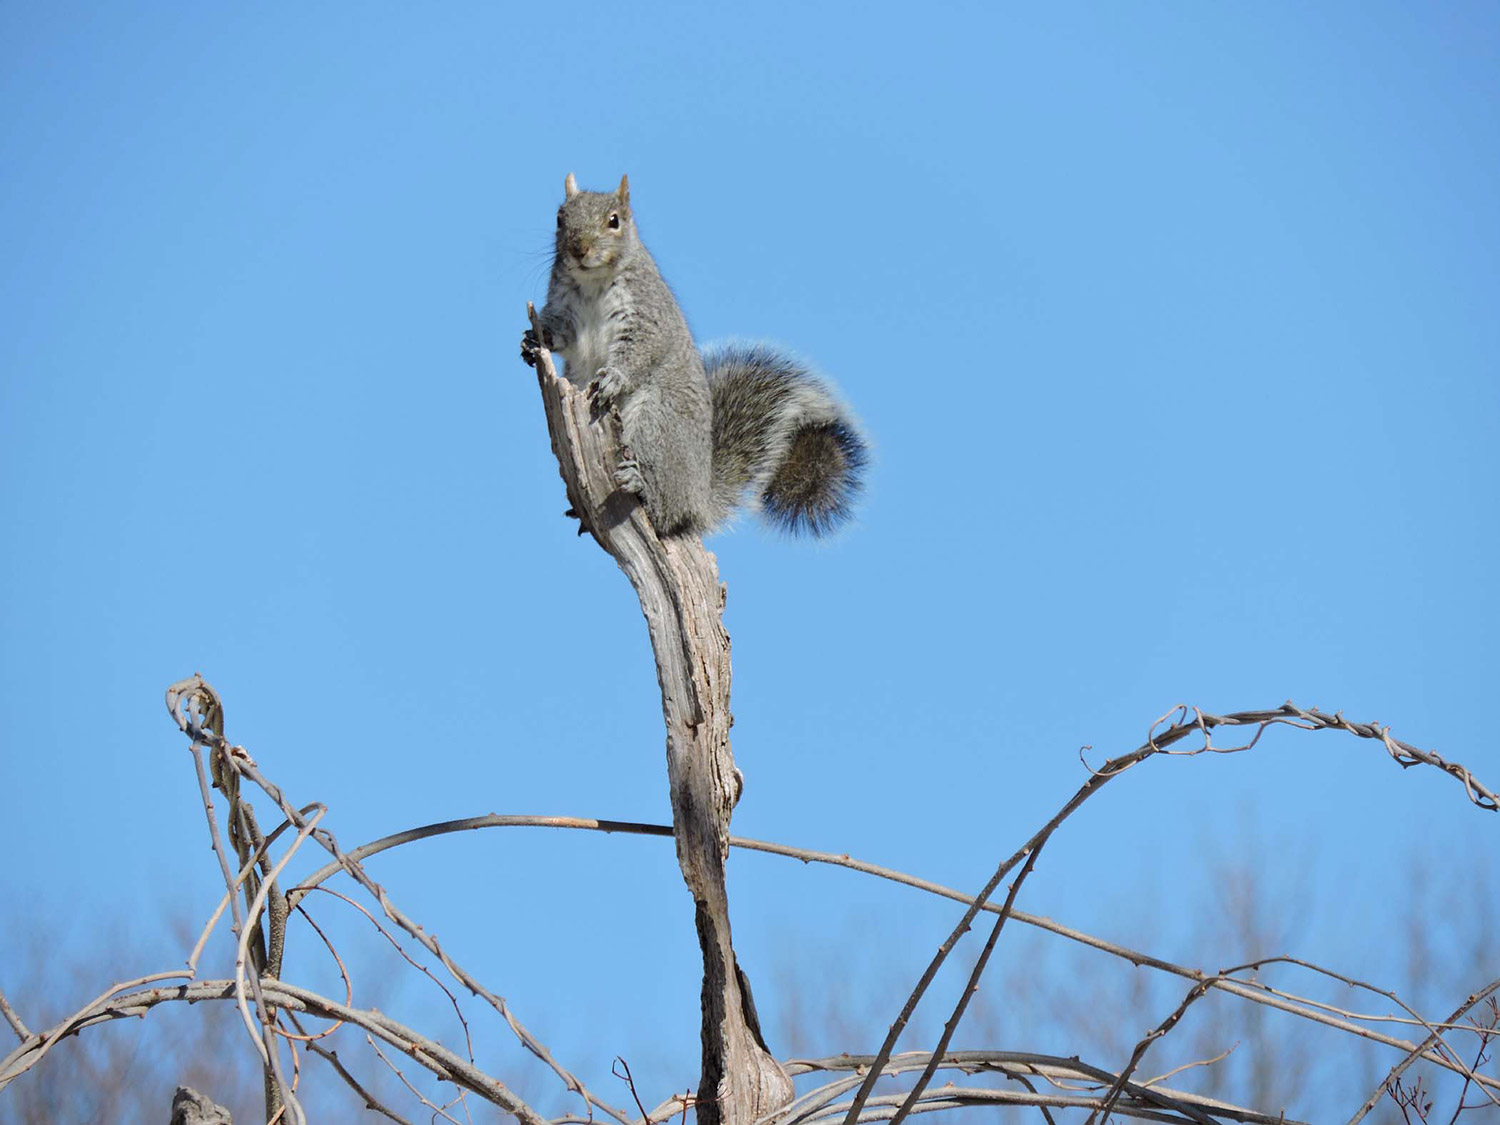 A gray squirrel looks unsure what to do after climbing a dead tree near Middle Beach in Kennebunk where it was photographed by Kristen Holmberg.